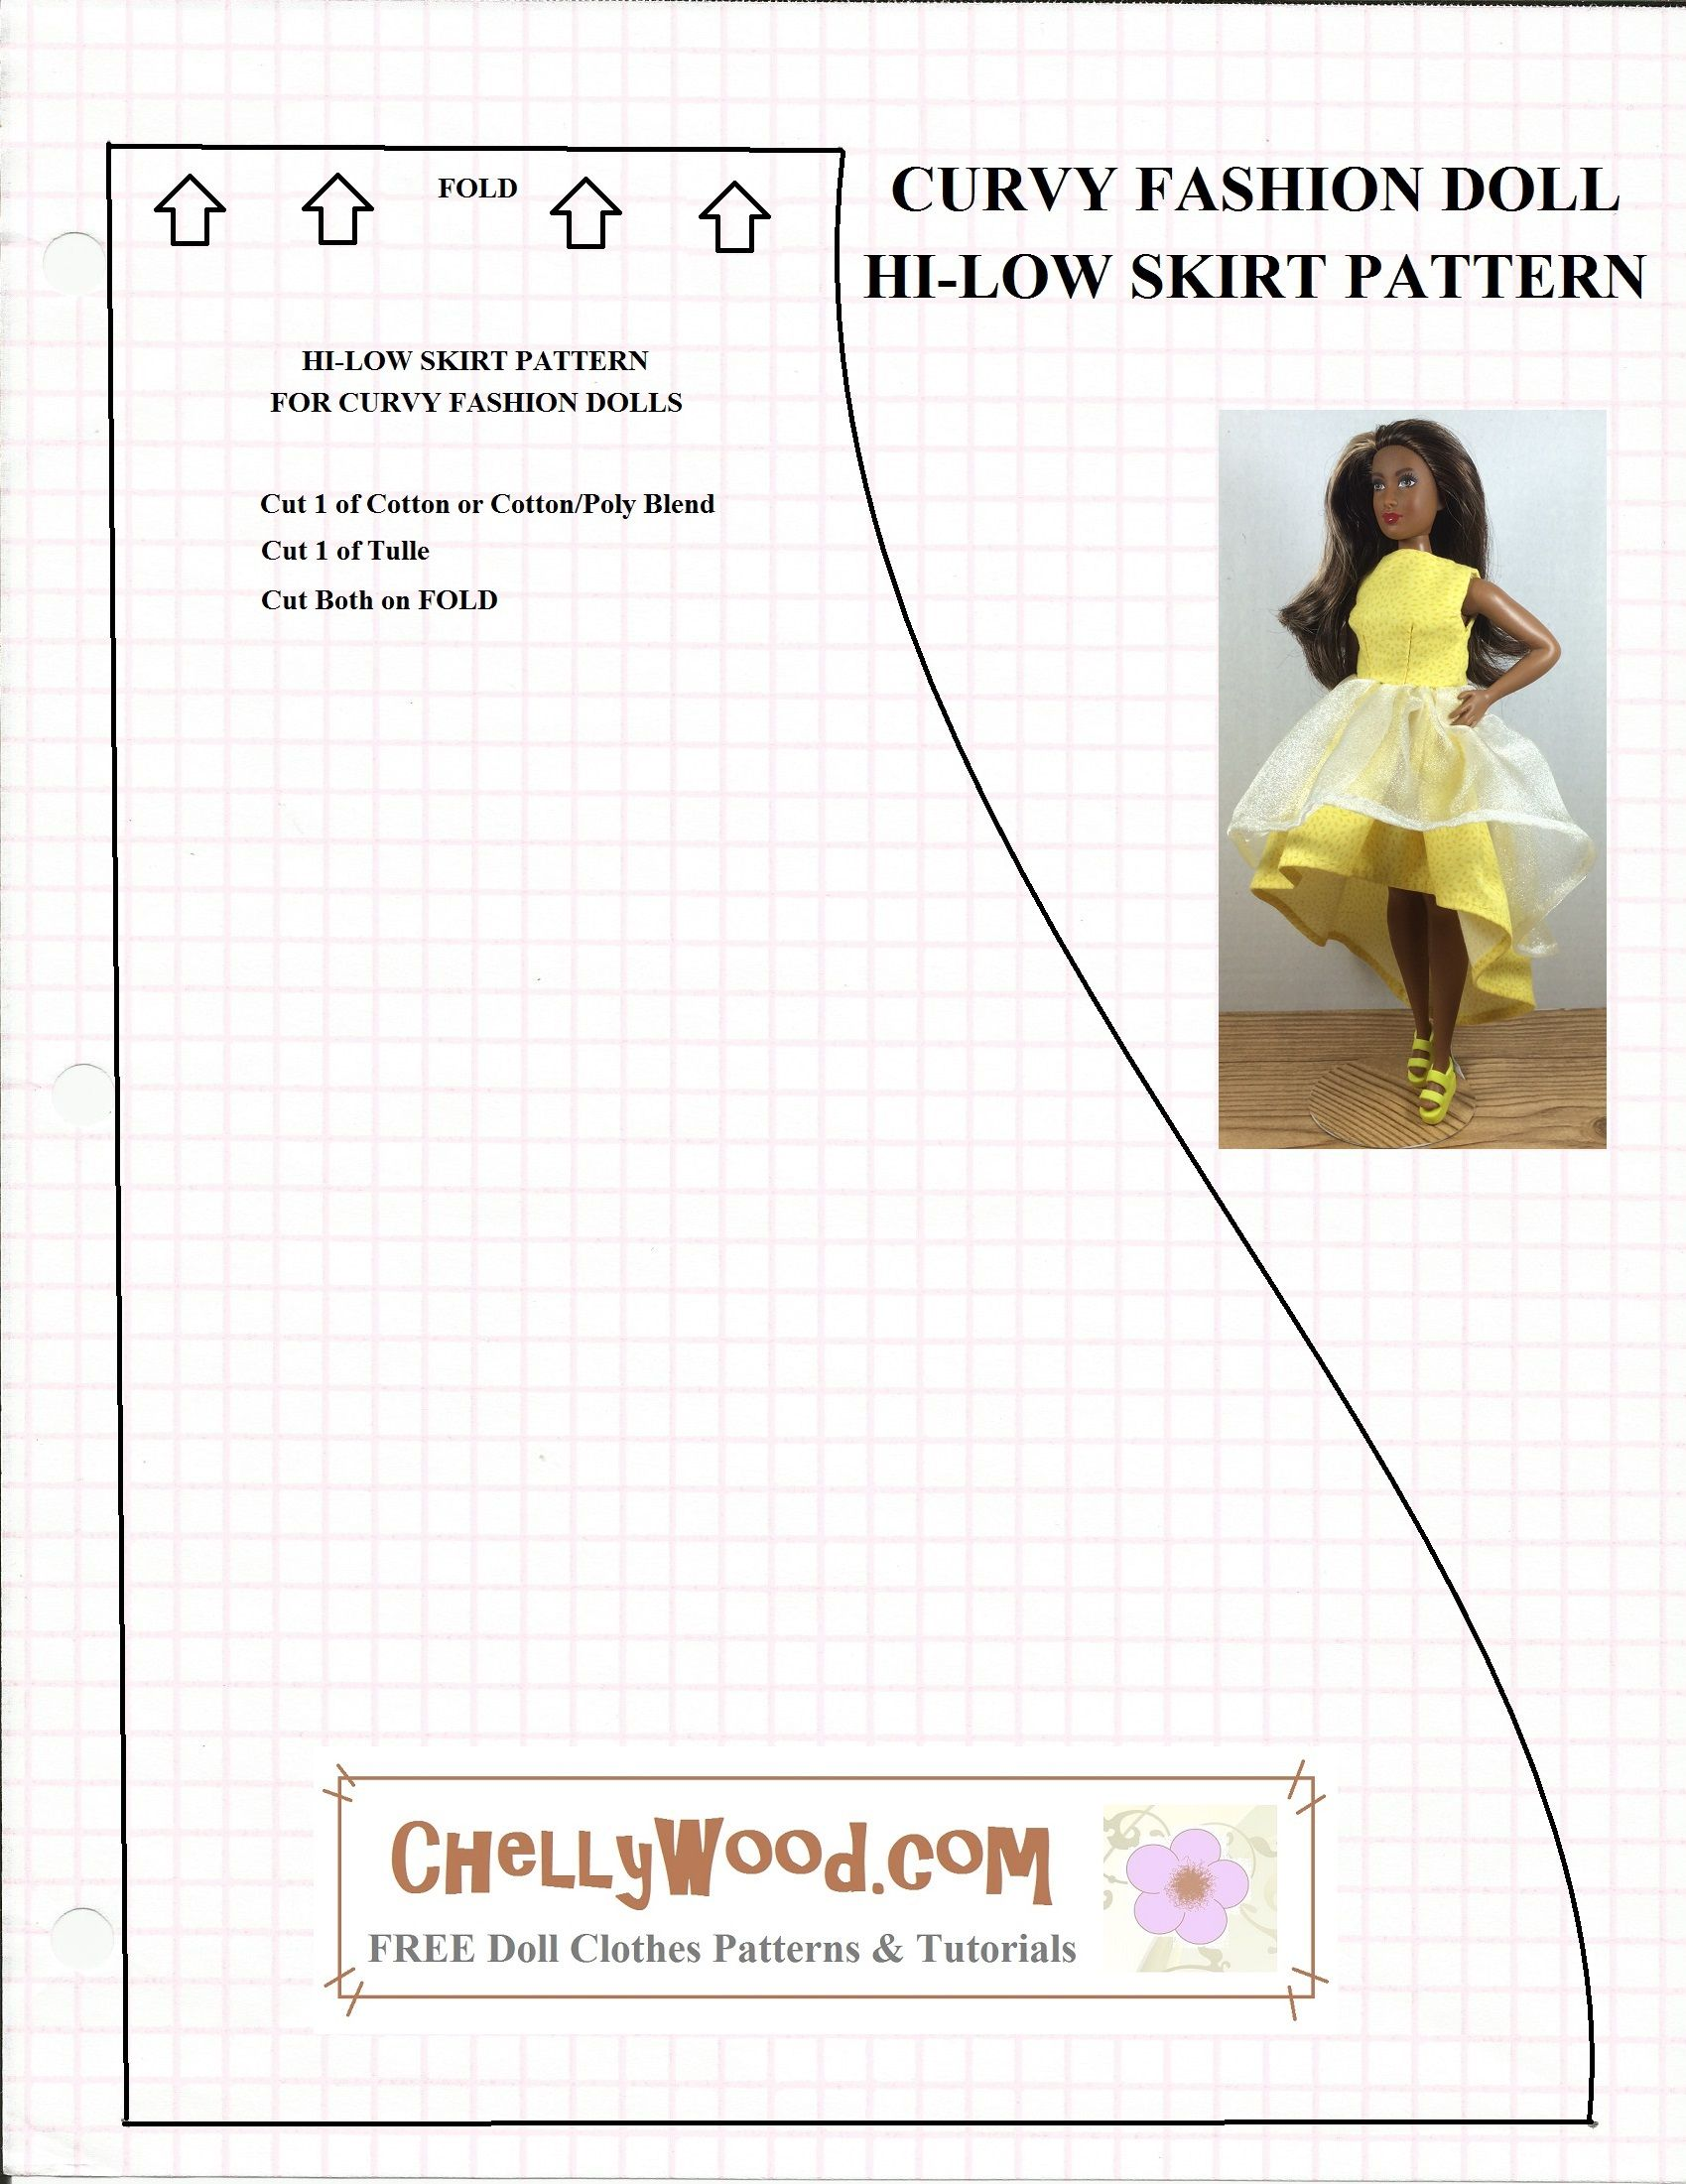 Free printable sewing patterns for doll clothes to fit the new Curvy